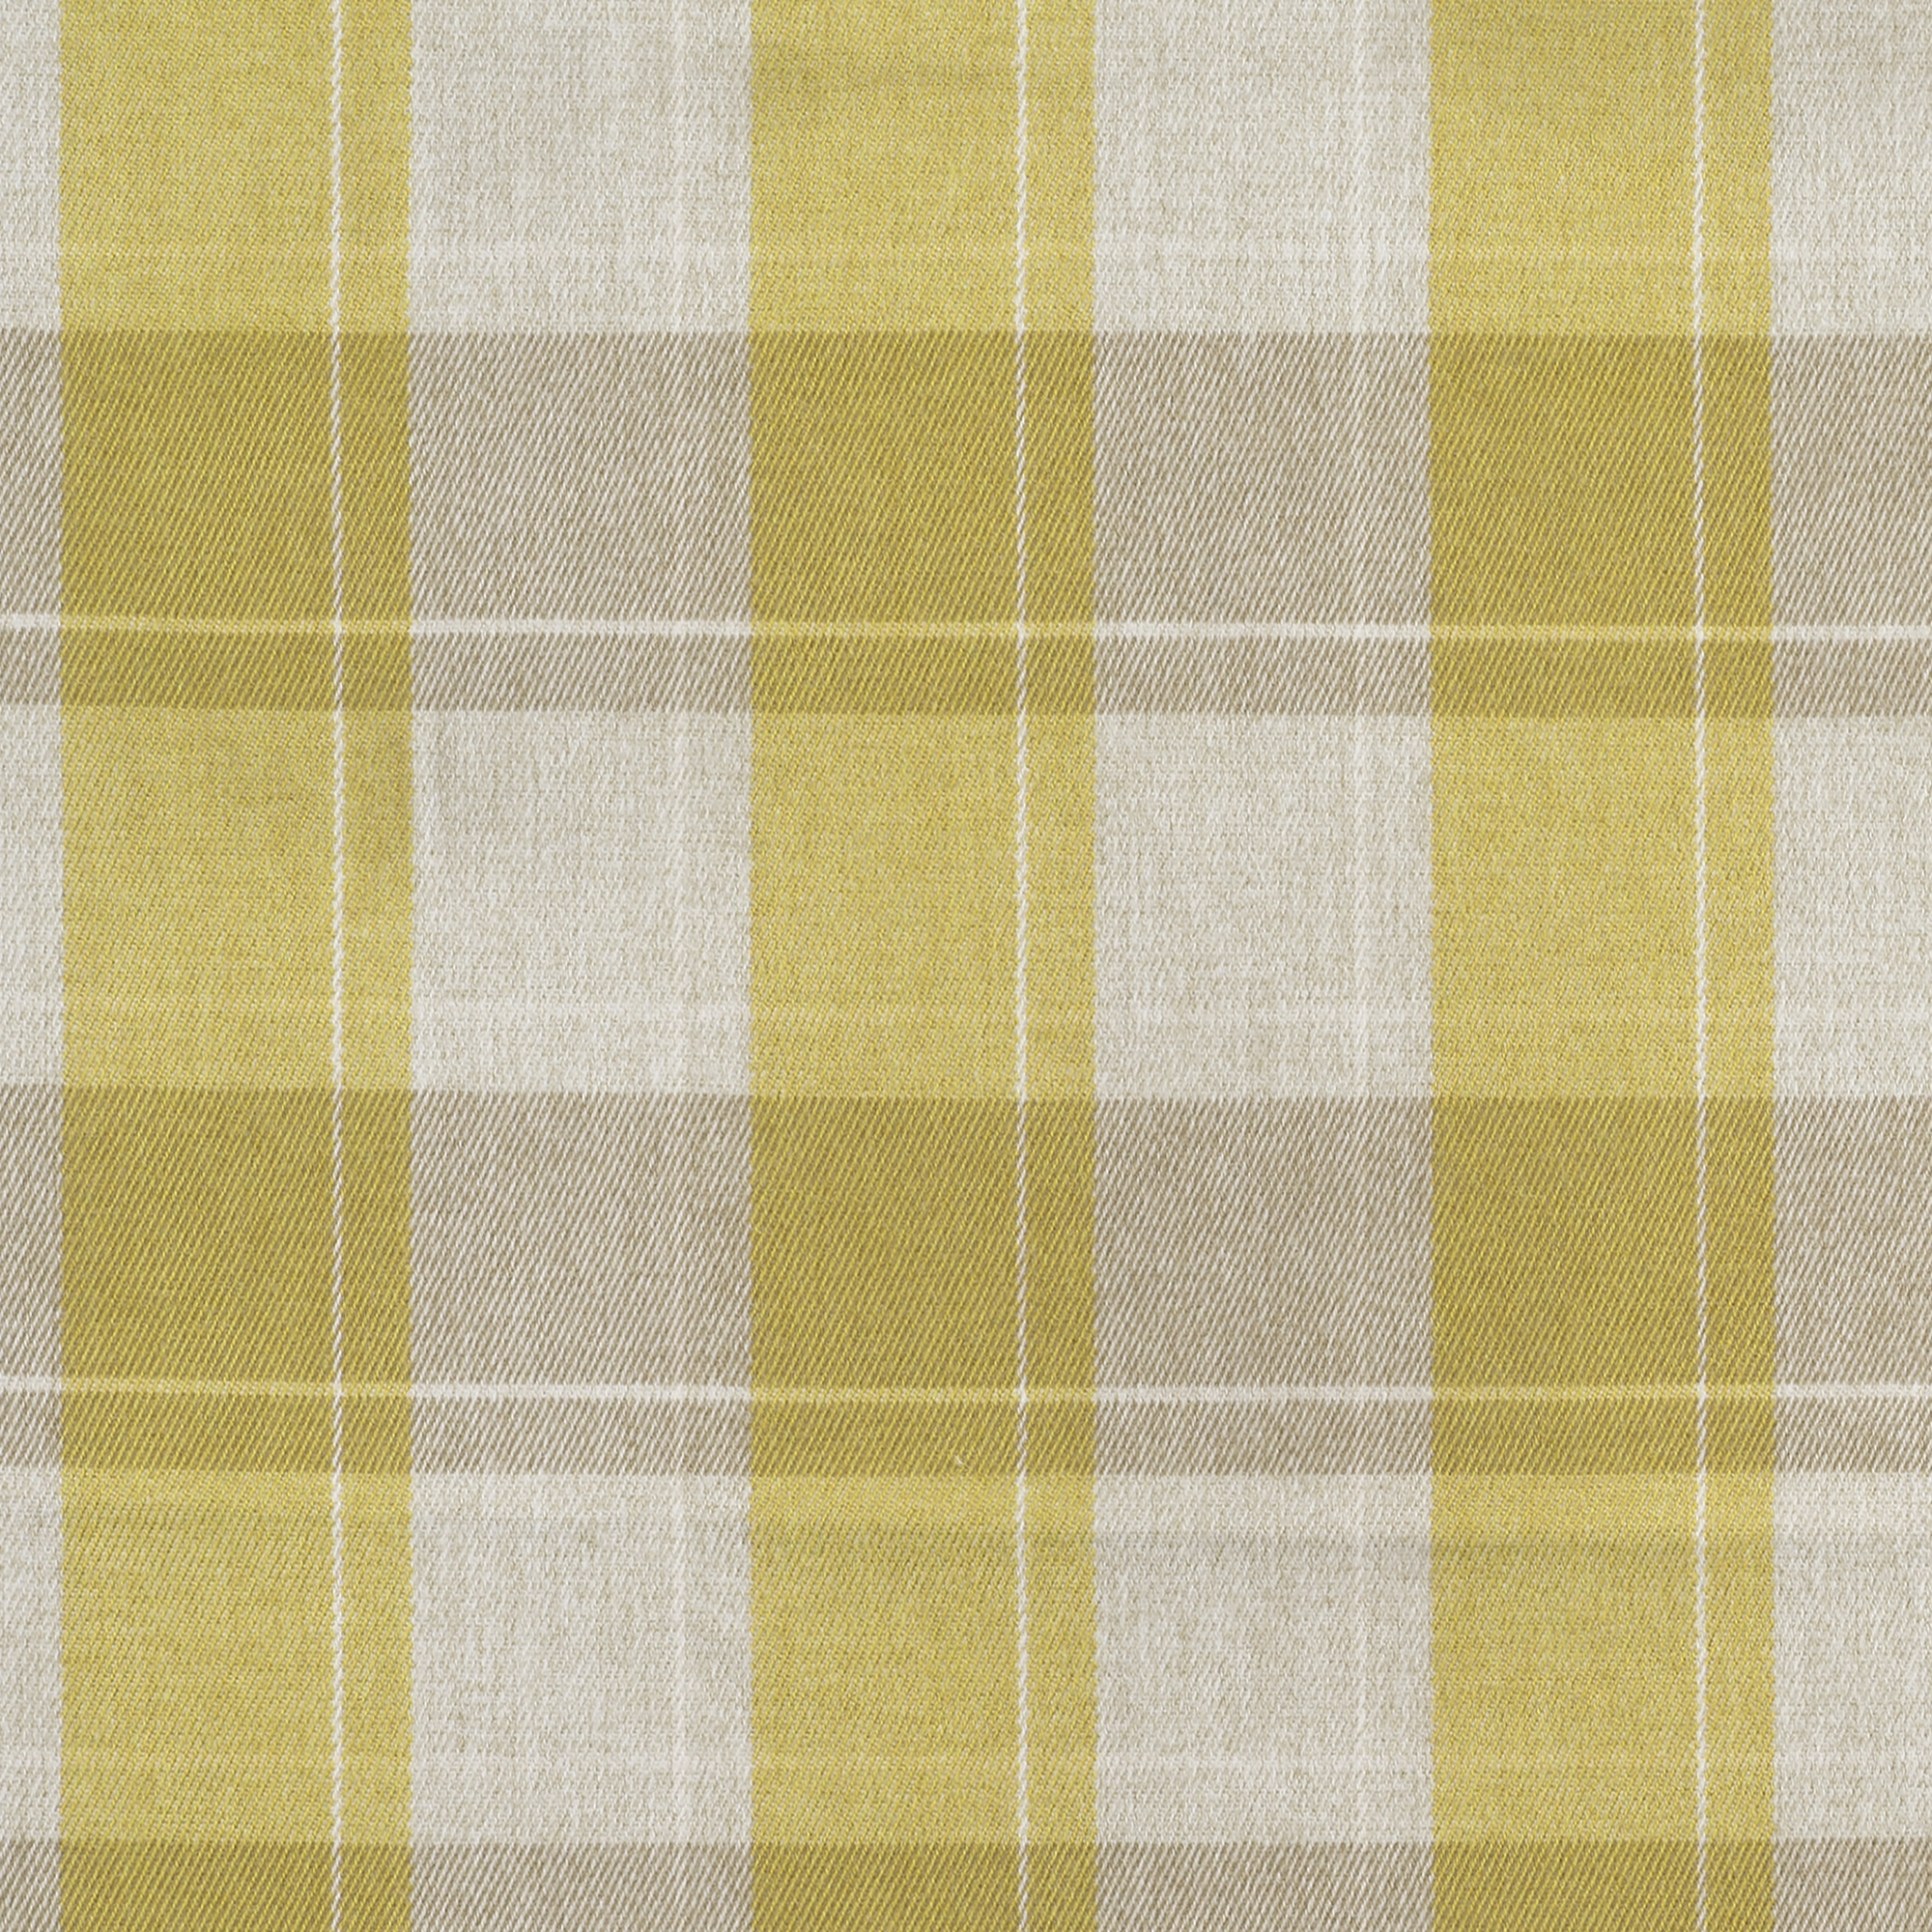 Fellcroft Buttercup Roman Blind Plaid Check Roman Blinds Regarding Plaid Roman Blinds (Image 2 of 15)